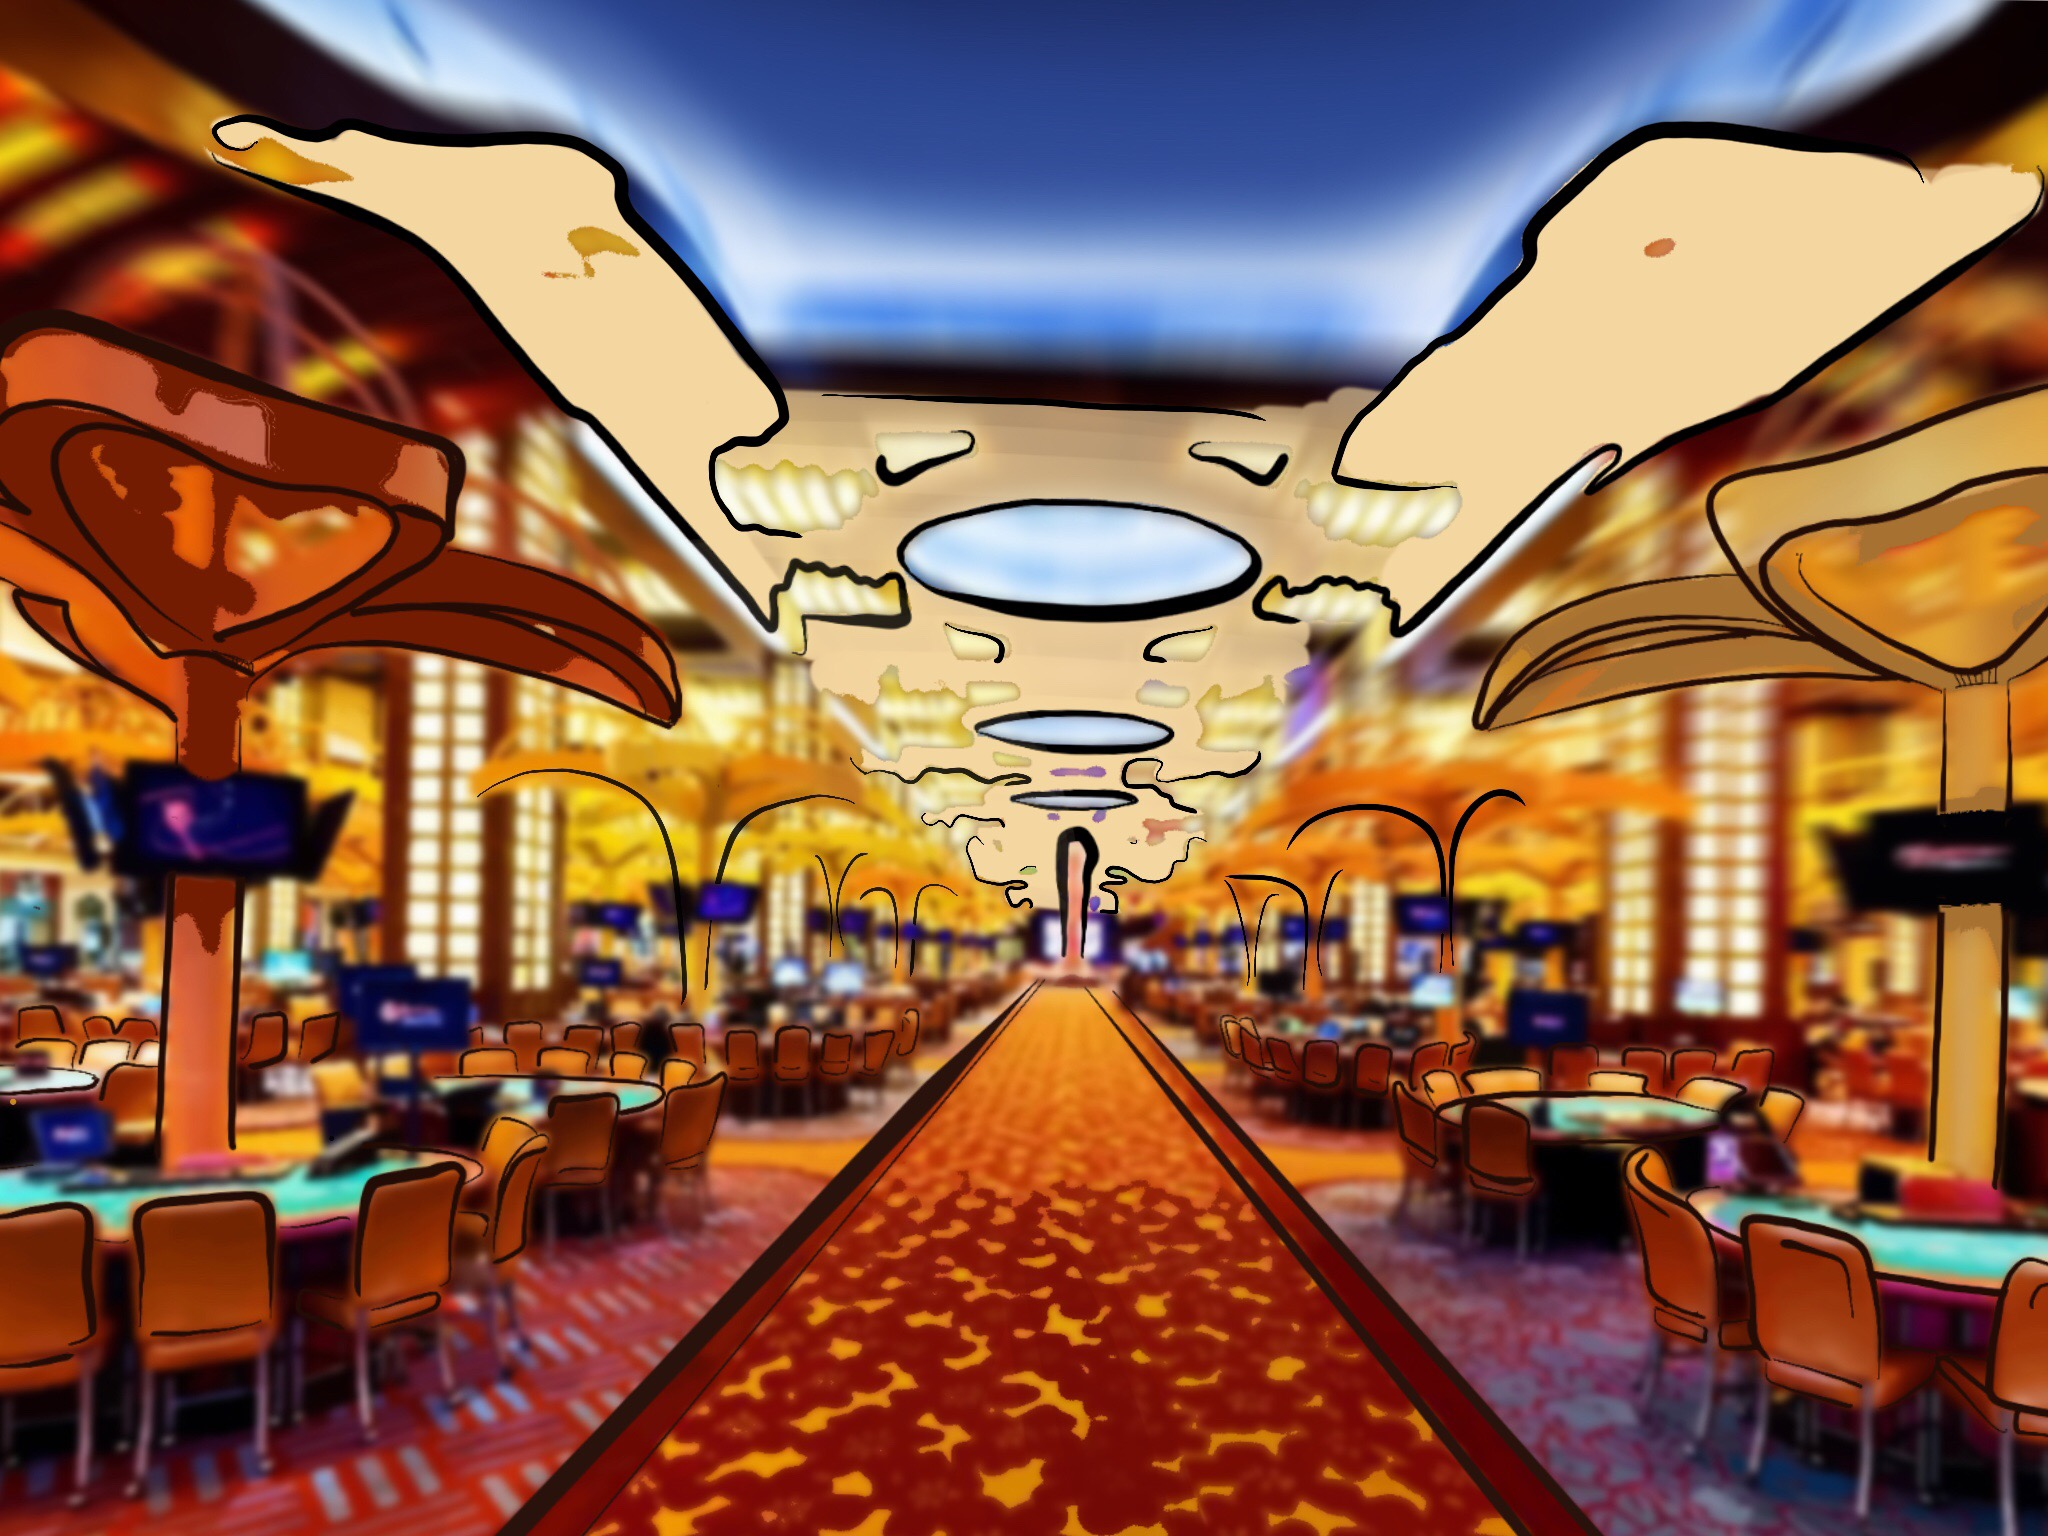 Image: A vast casino filled with cigar smoke and the sounds of playing cards hitting fabric.